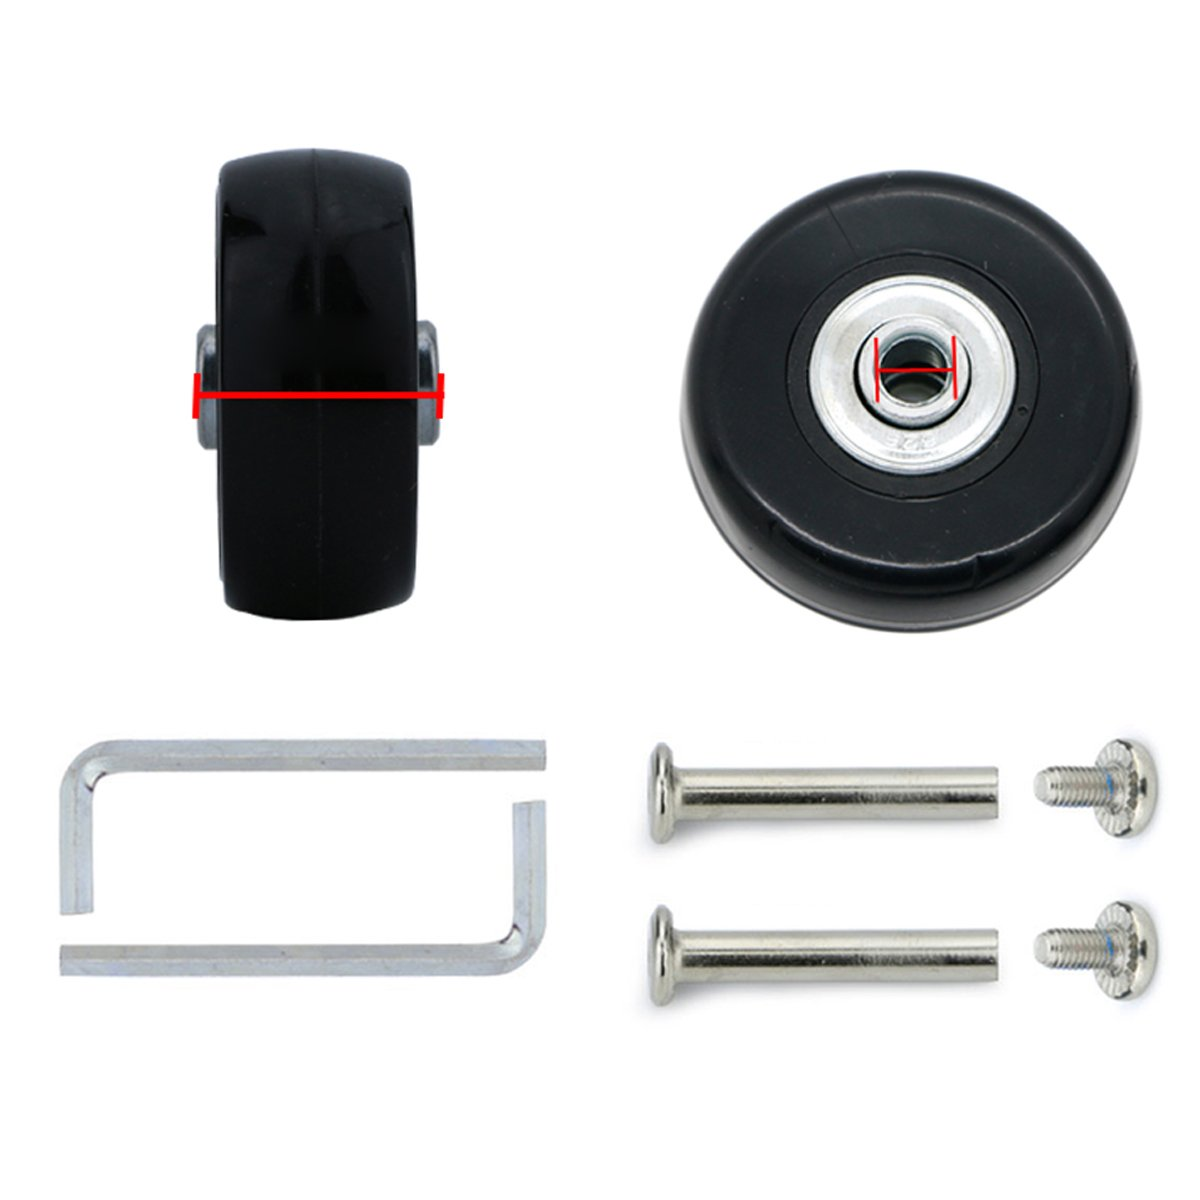 Super Ma 2 Set of Replacement Luggage Suitcase Wheels with Bearings & tools (50x22)